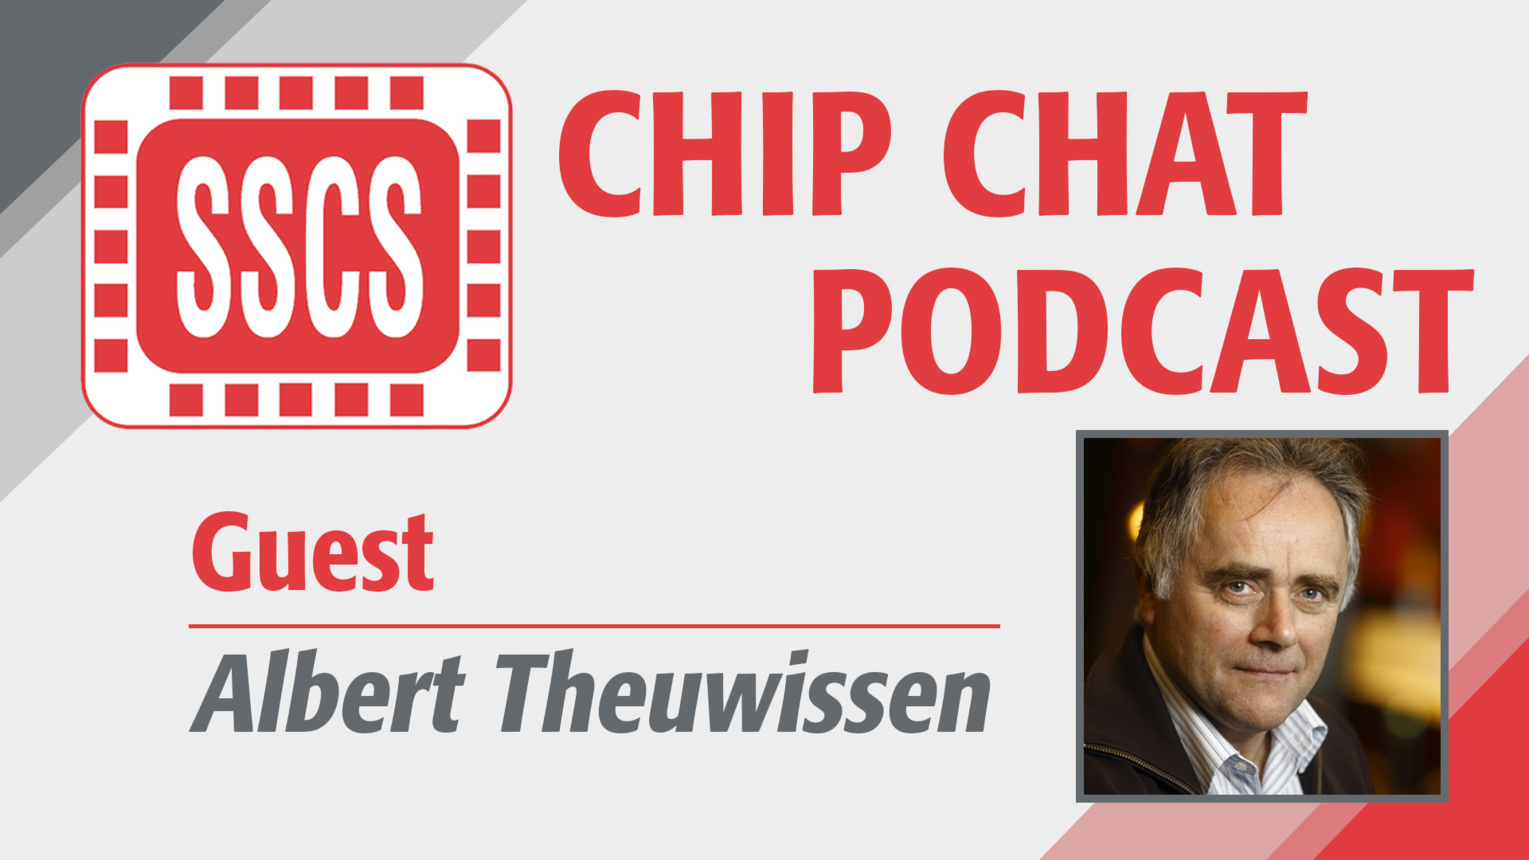 Episode 2 - Albert Theuwissen - Chip Chat Podcast